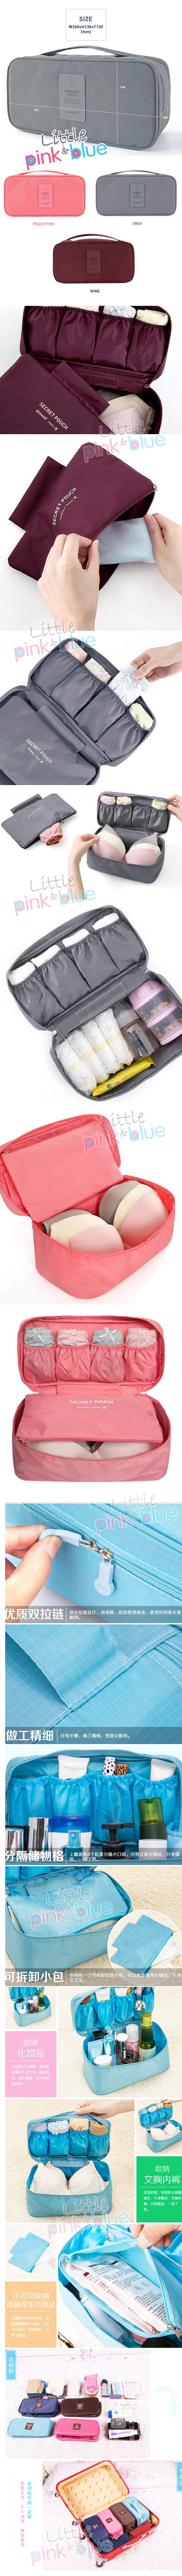 Korean Top Travel Underwear Pouch Bra Organizer Storage Bag